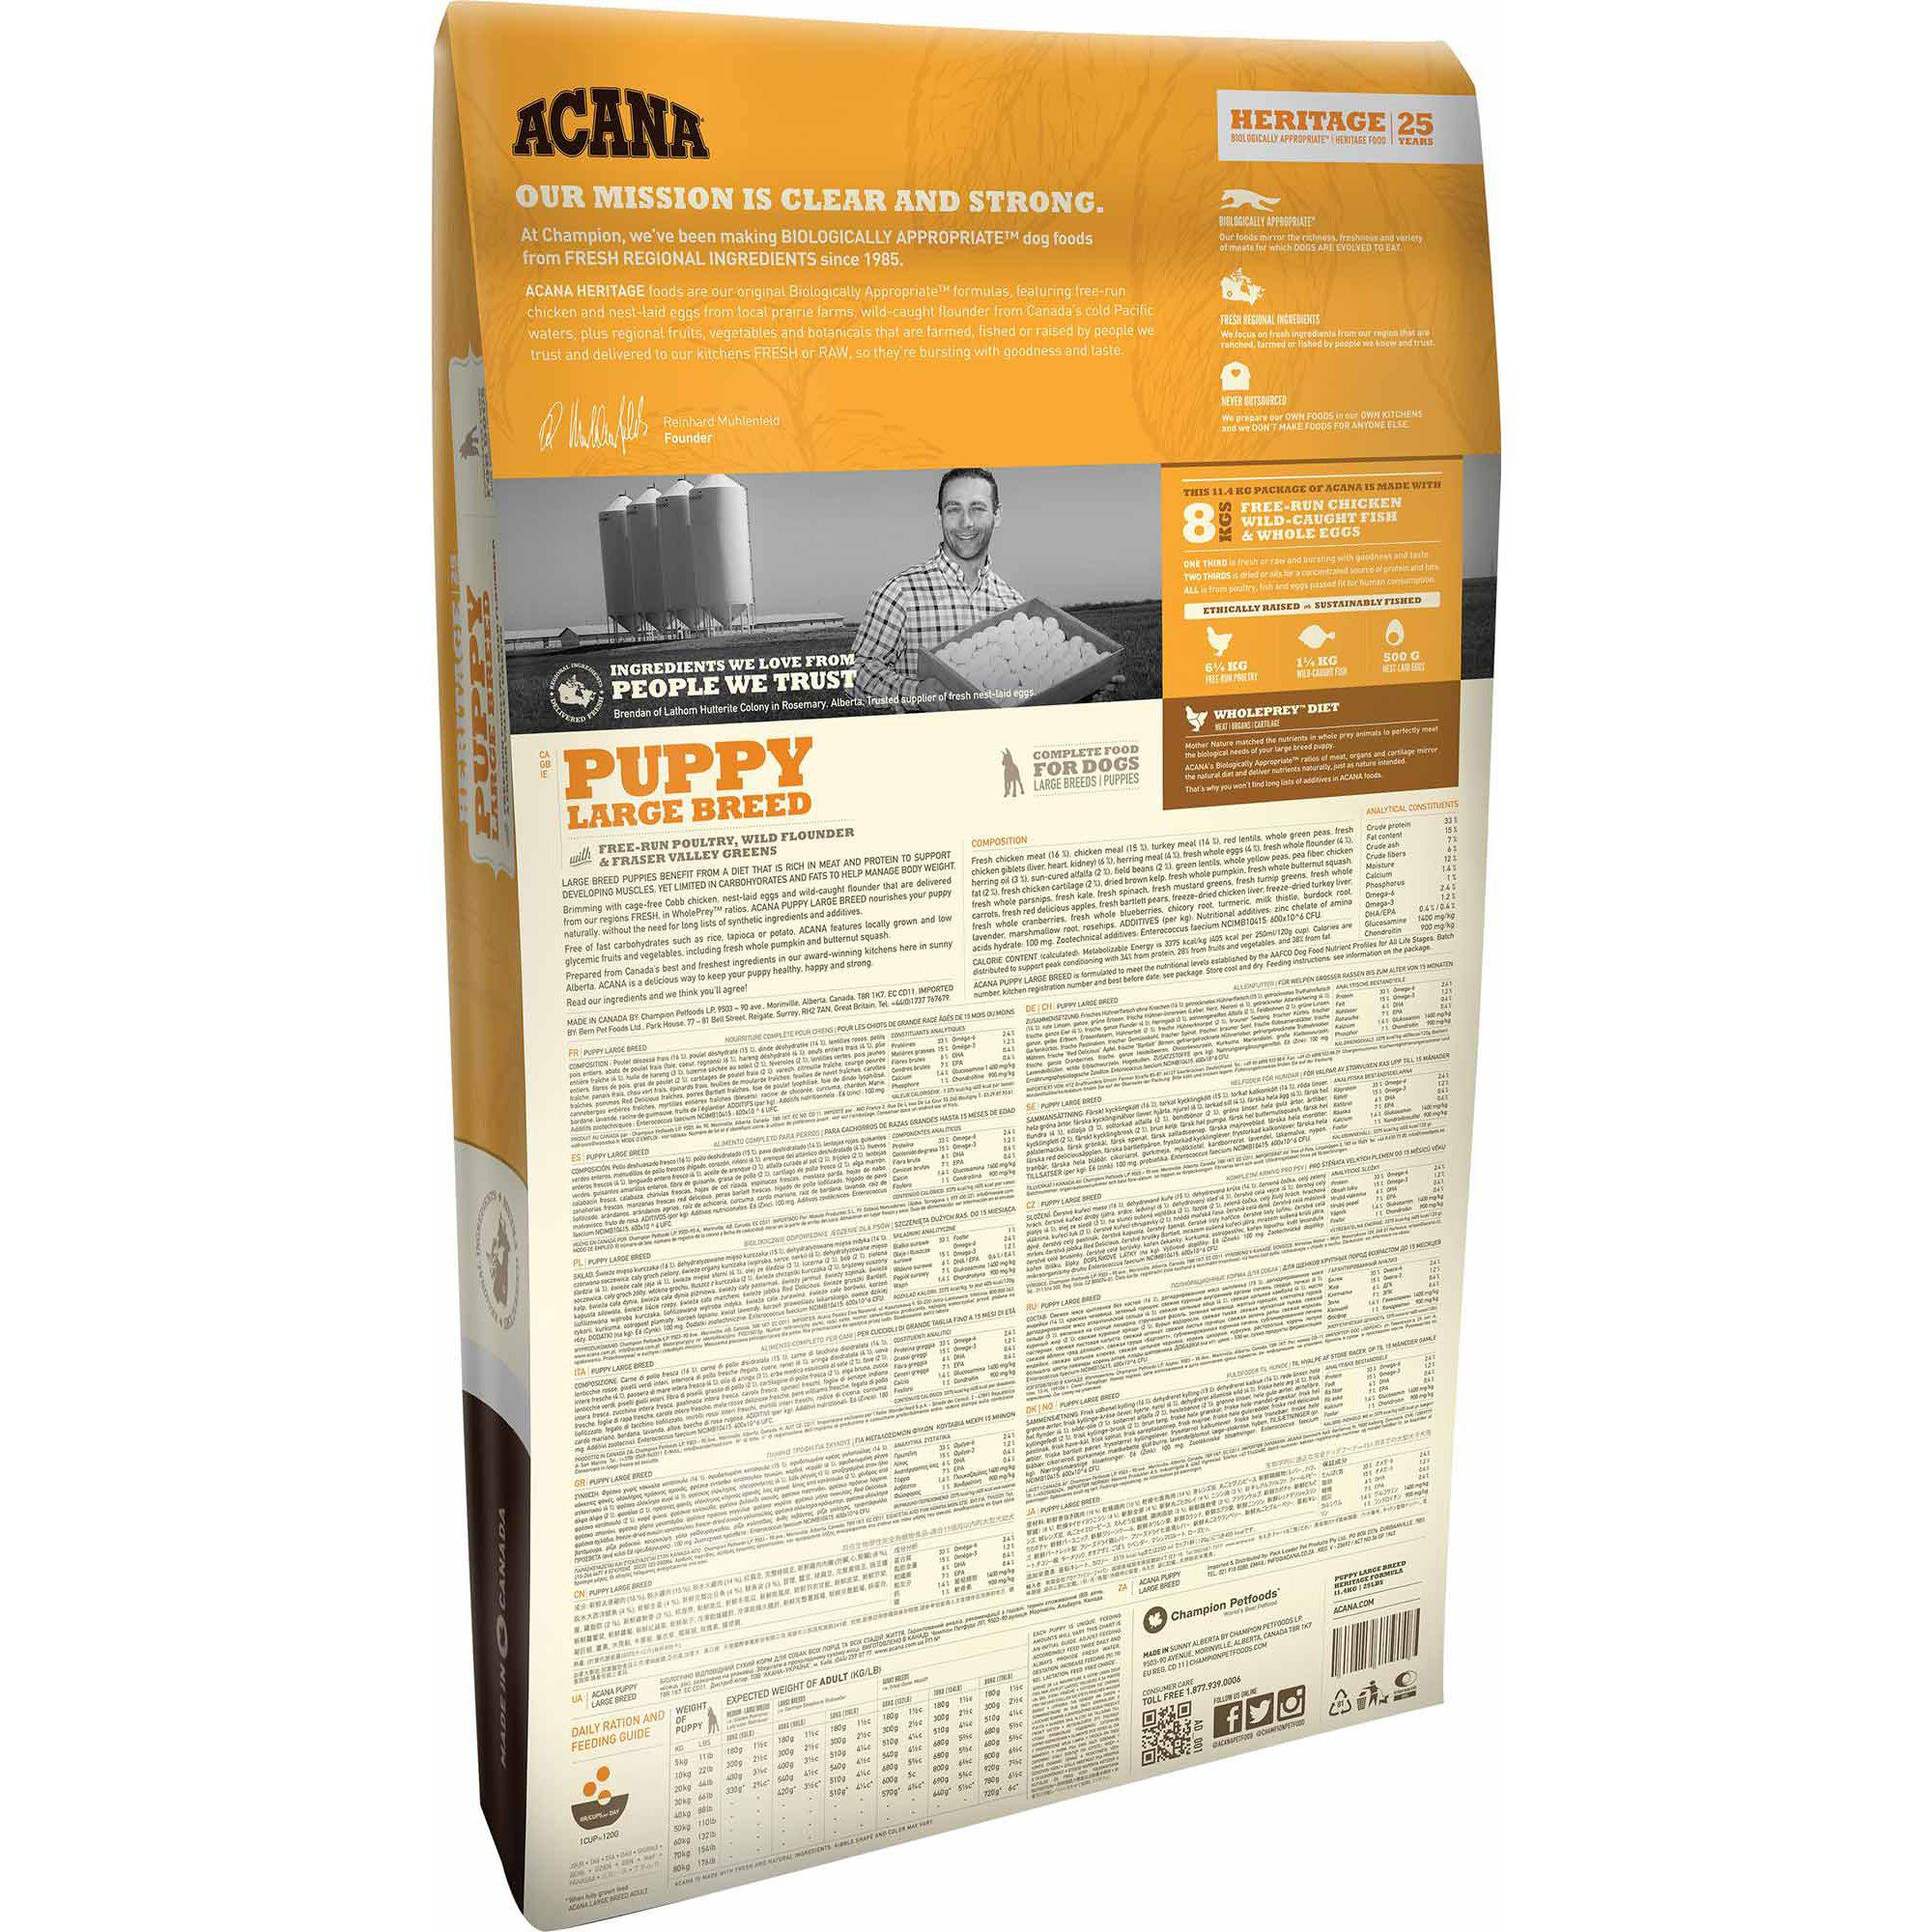 ACANA® HERITAGE Puppy Large Breed 11.4KG - Critter Country Supply Ltd.